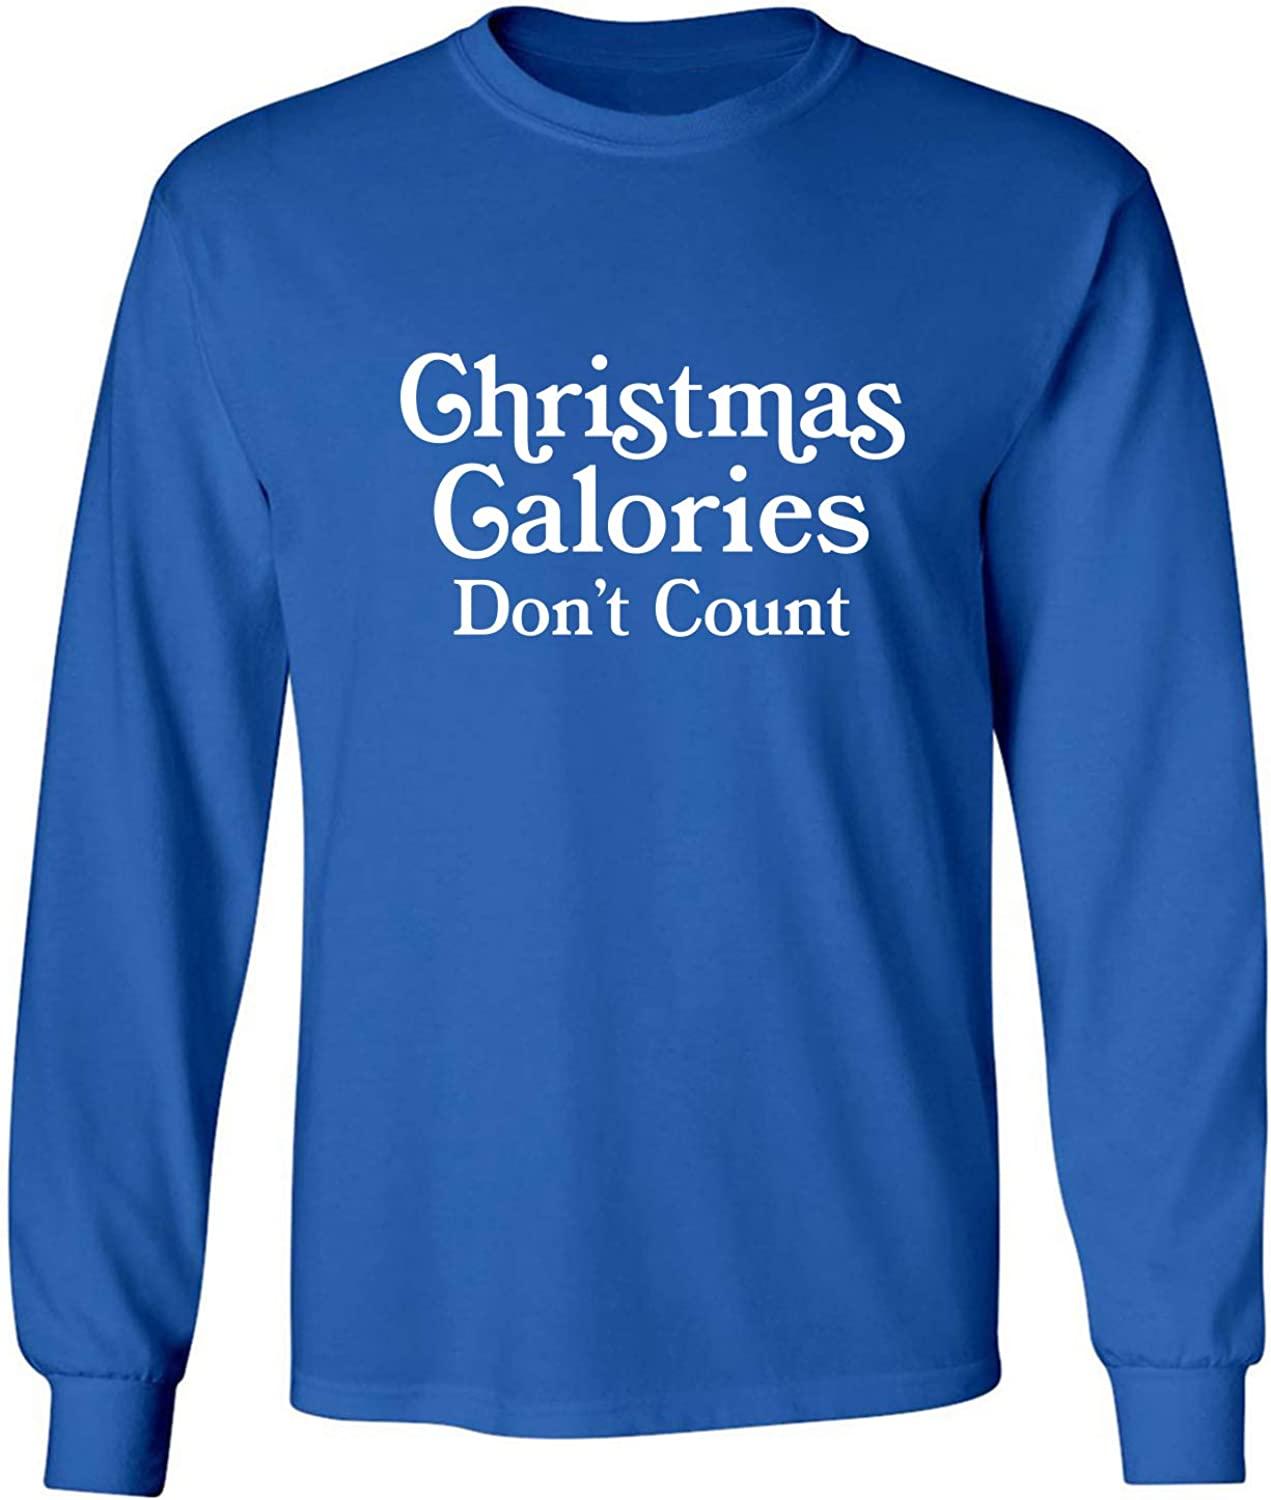 Christmas Calories Don't Count Adult Long Sleeve T-Shirt in Royal - XXXX-Large